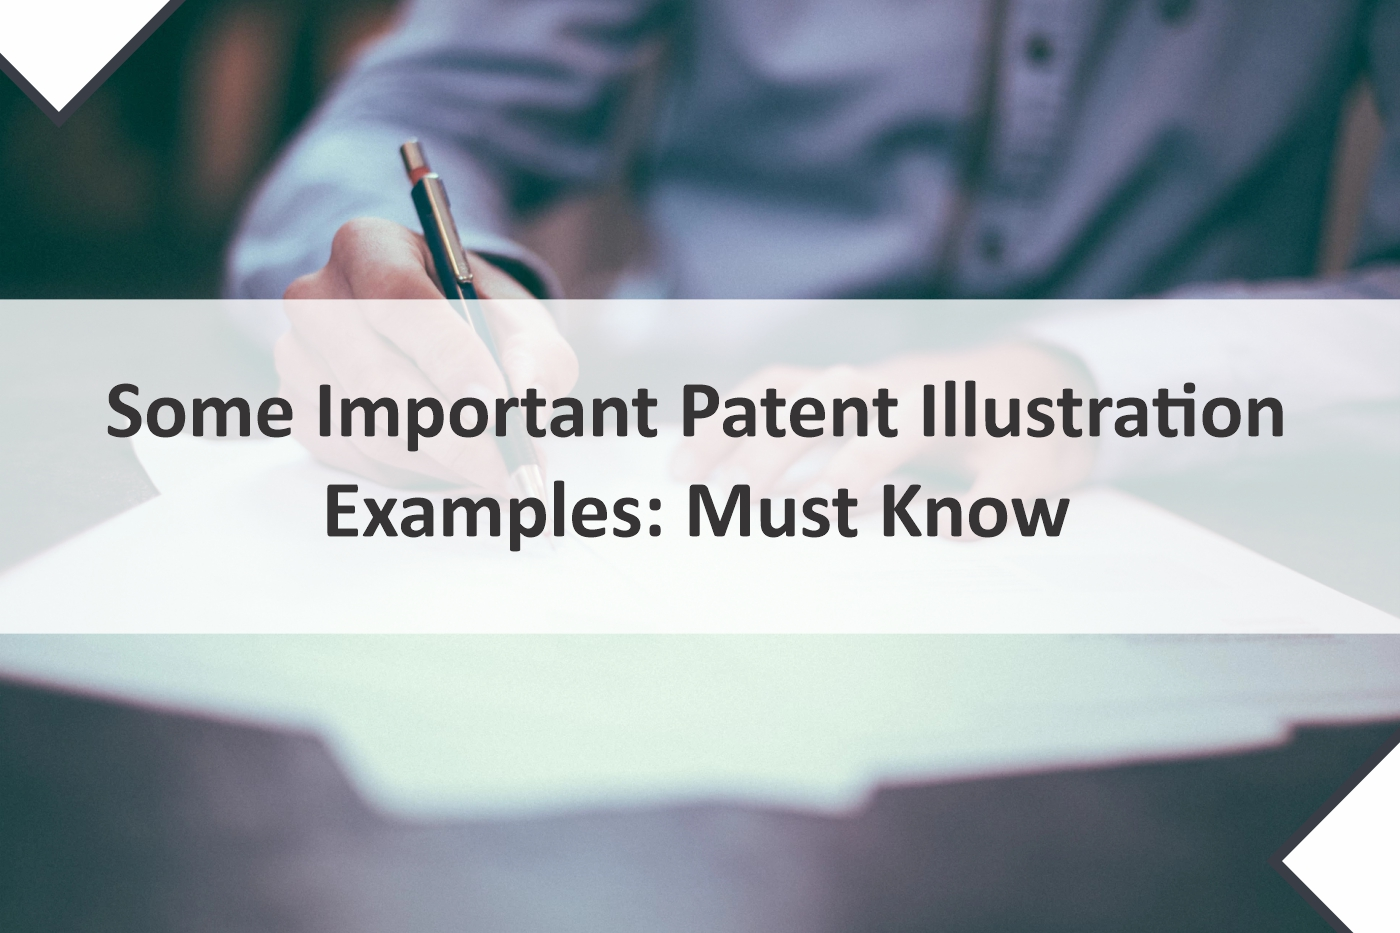 Some Important Patent Illustration Examples: Must Know